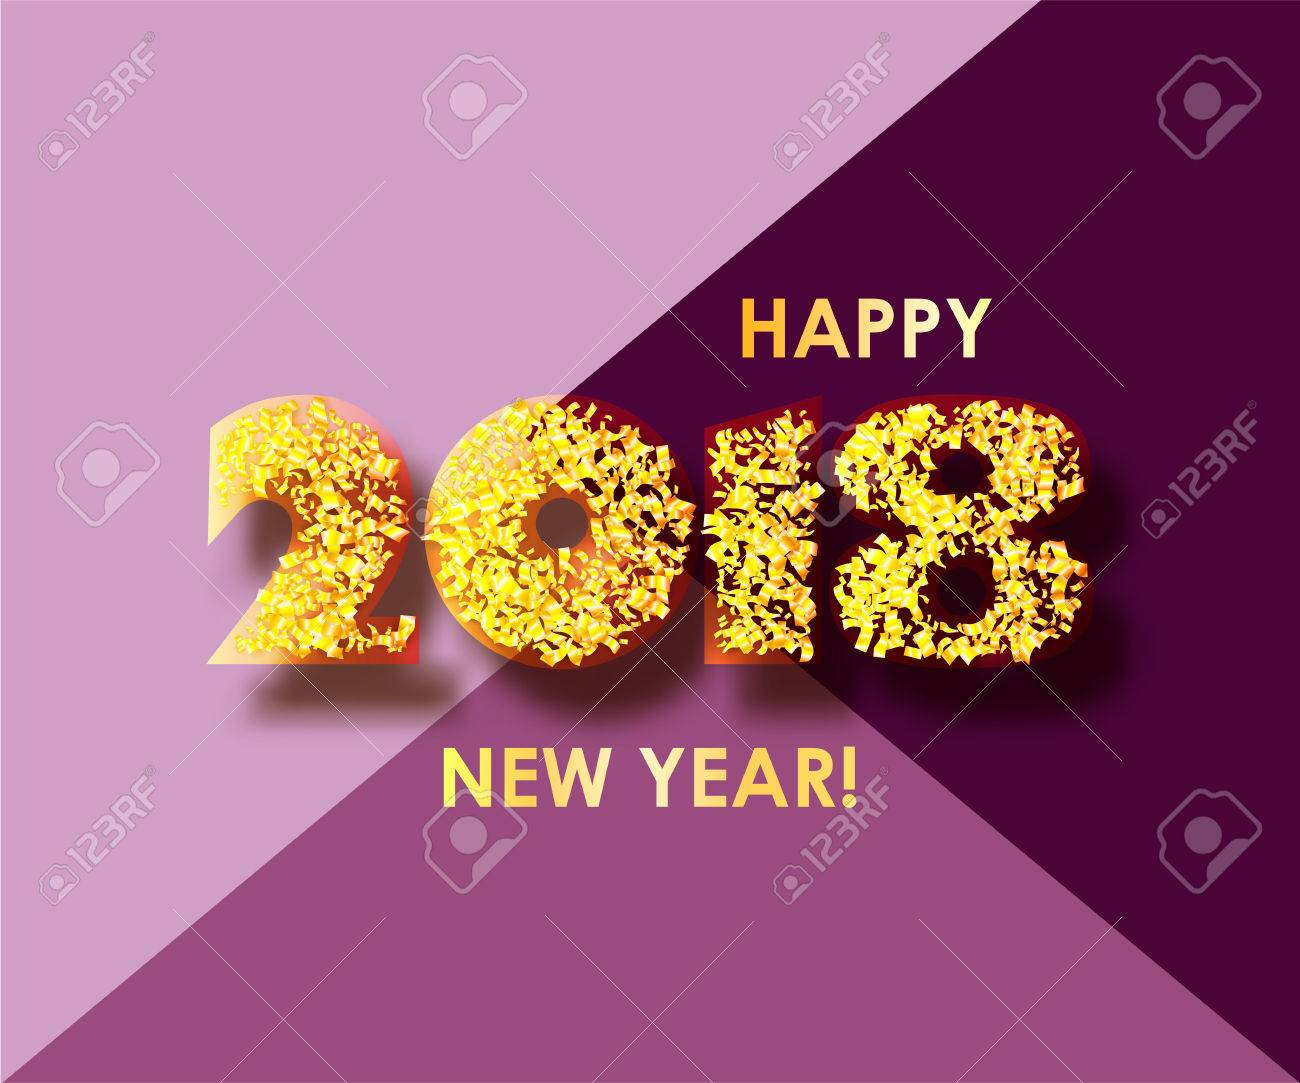 new year 2018 celebration background happy new year colorful digital type on purple background with